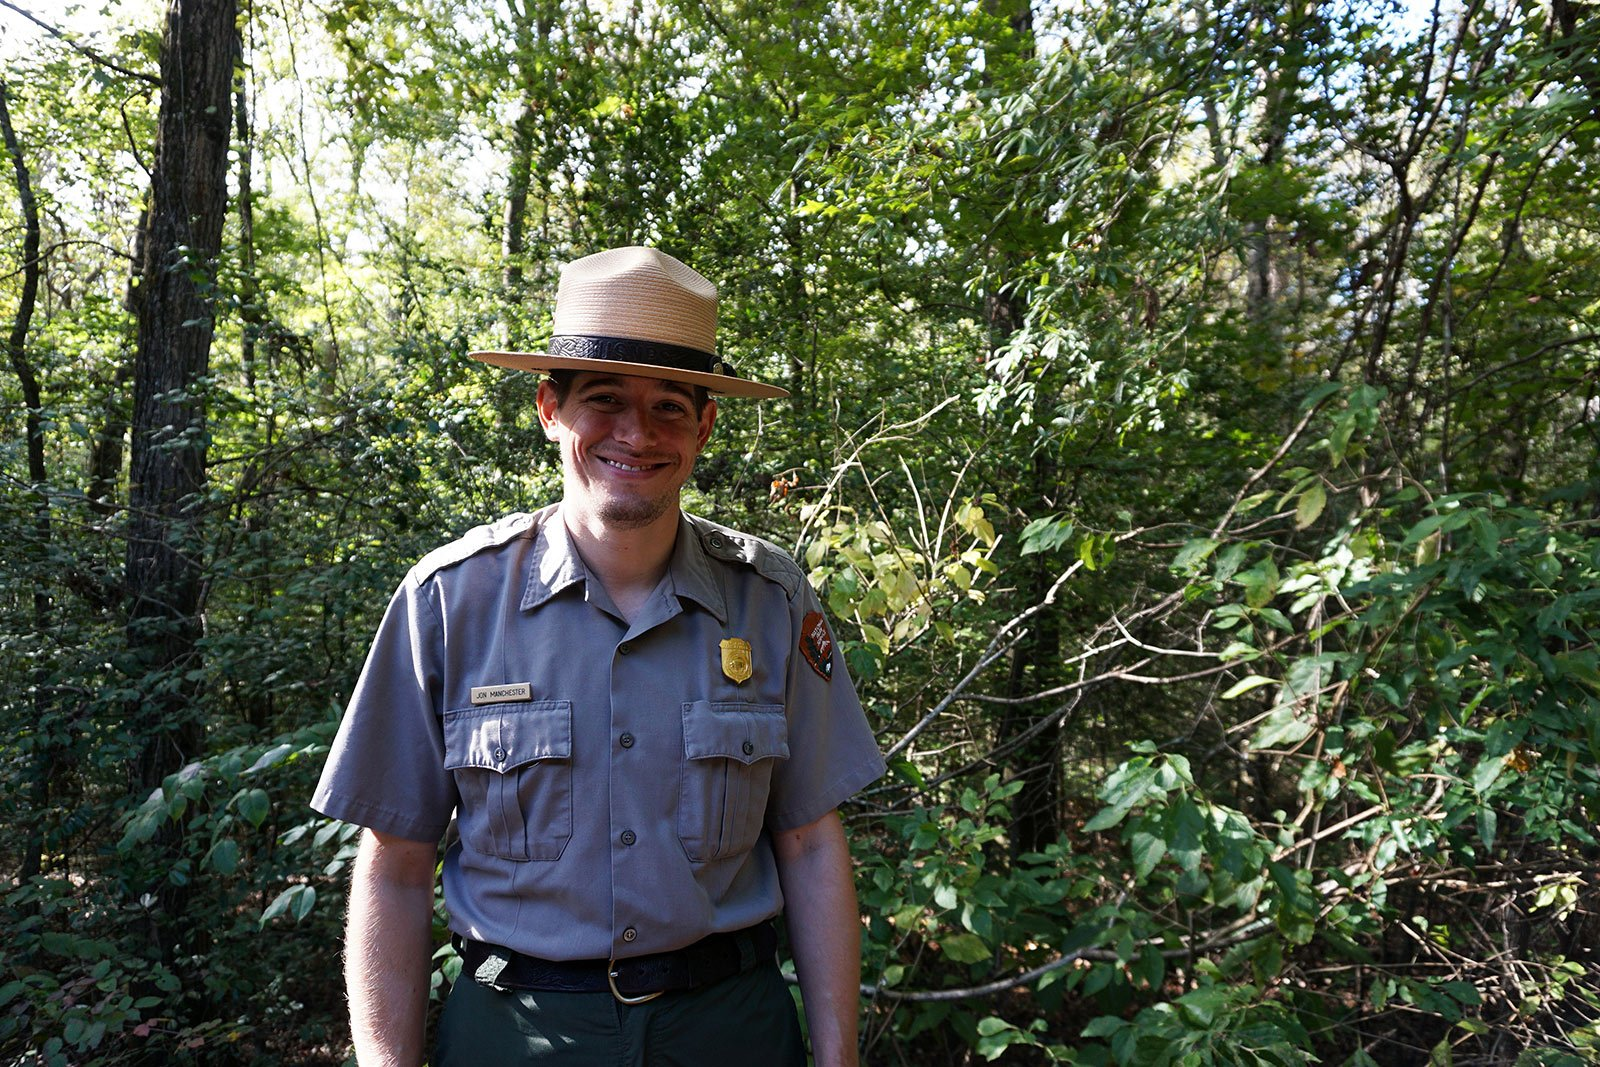 Jon Manchester, park ranger at Congaree, said the busiest time of year is between spring and fall. Summer is usually hot and muggy which can keep numbers down.